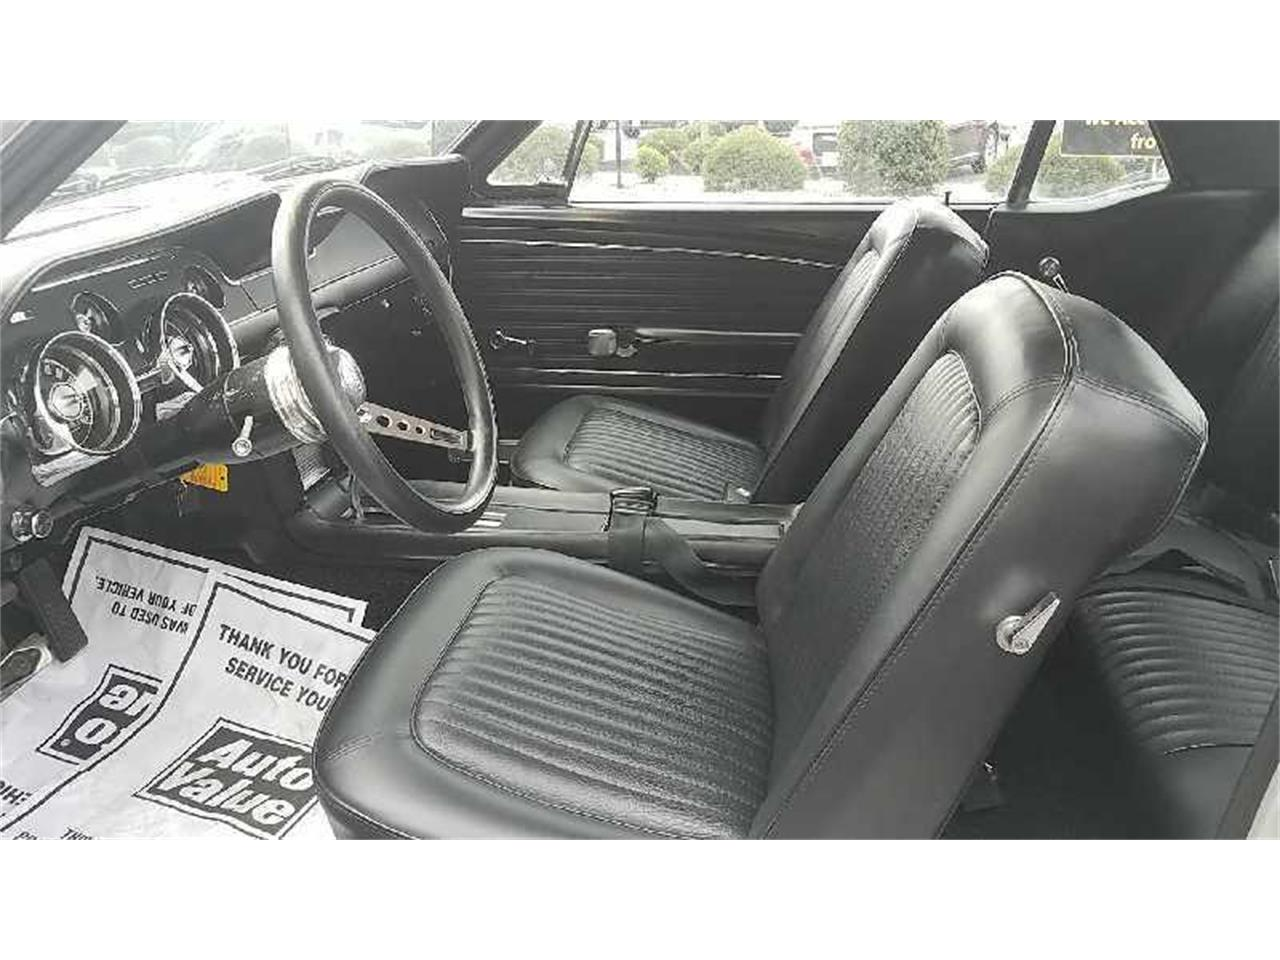 Large Picture of '68 Mustang located in Richmond Virginia Auction Vehicle Offered by Motley's Richmond Auto Auction - QYPM